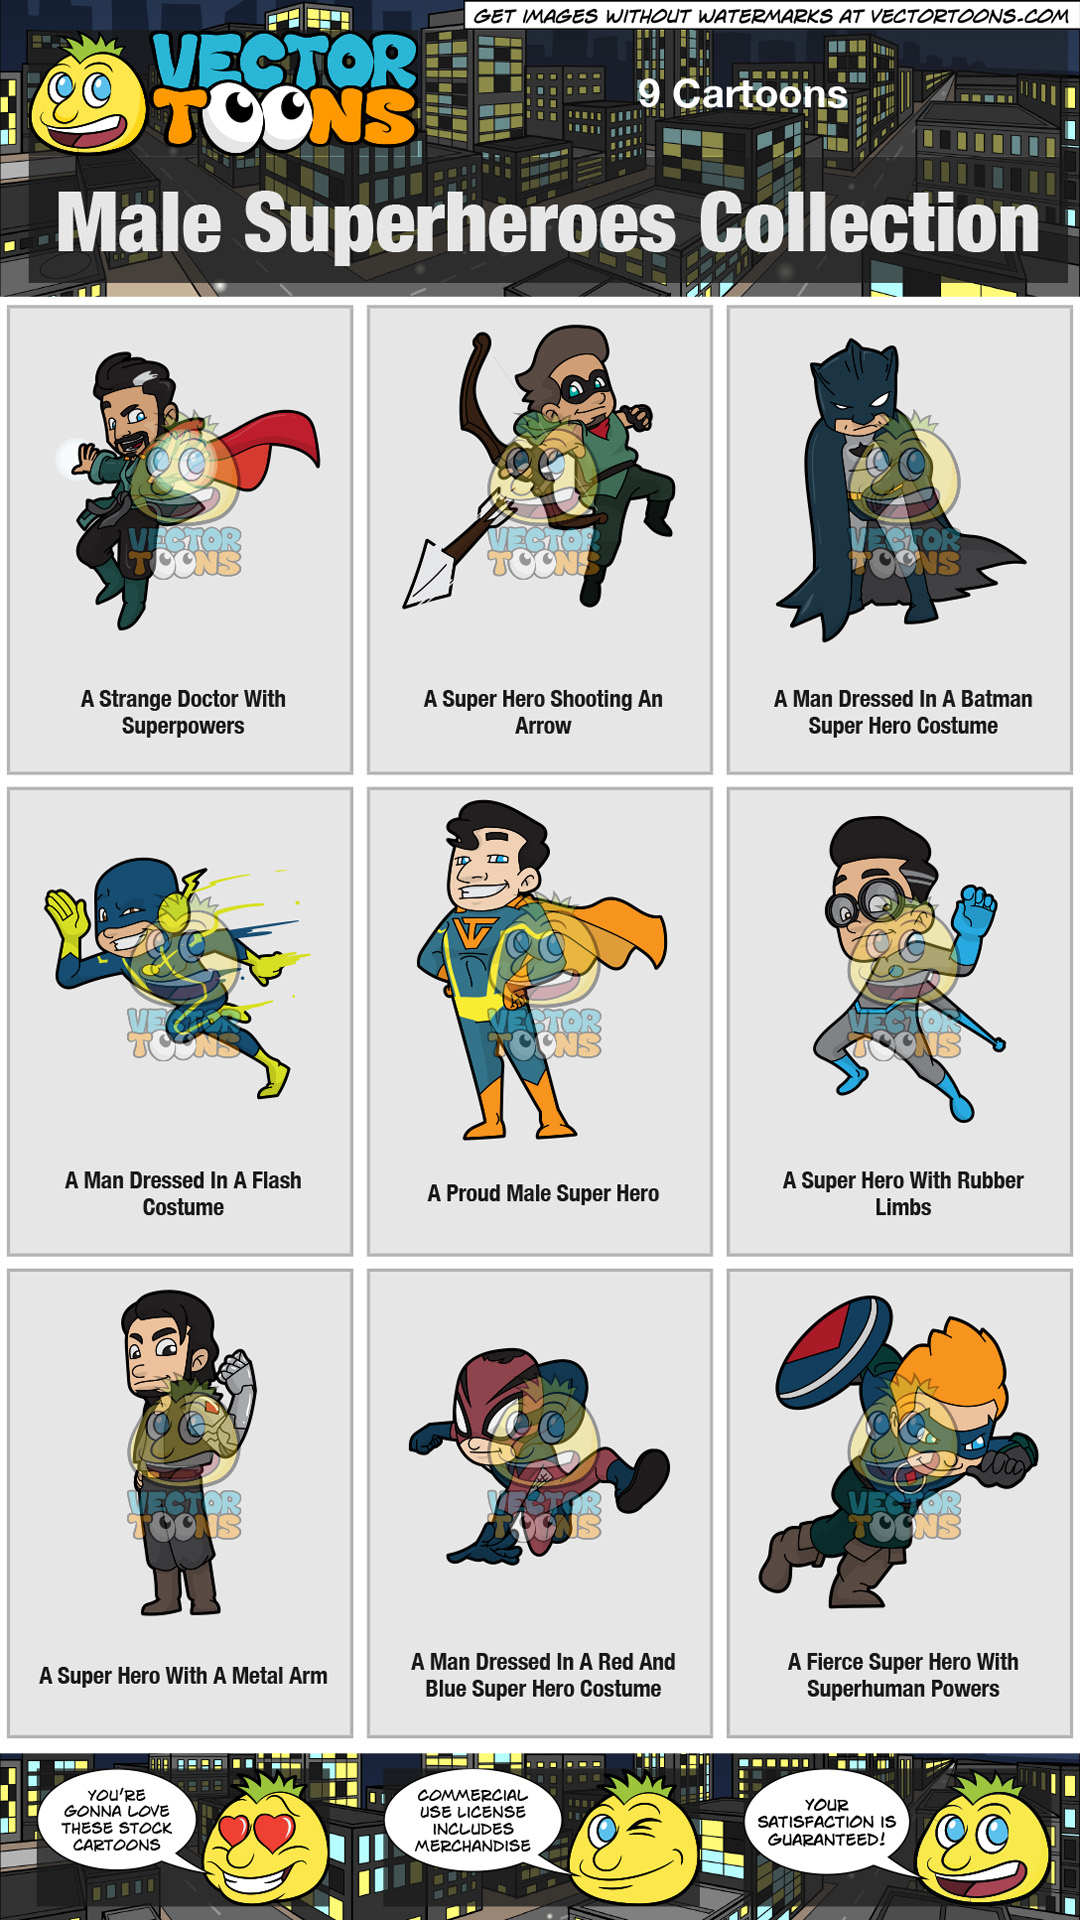 Male Superheroes Collection thumbnail